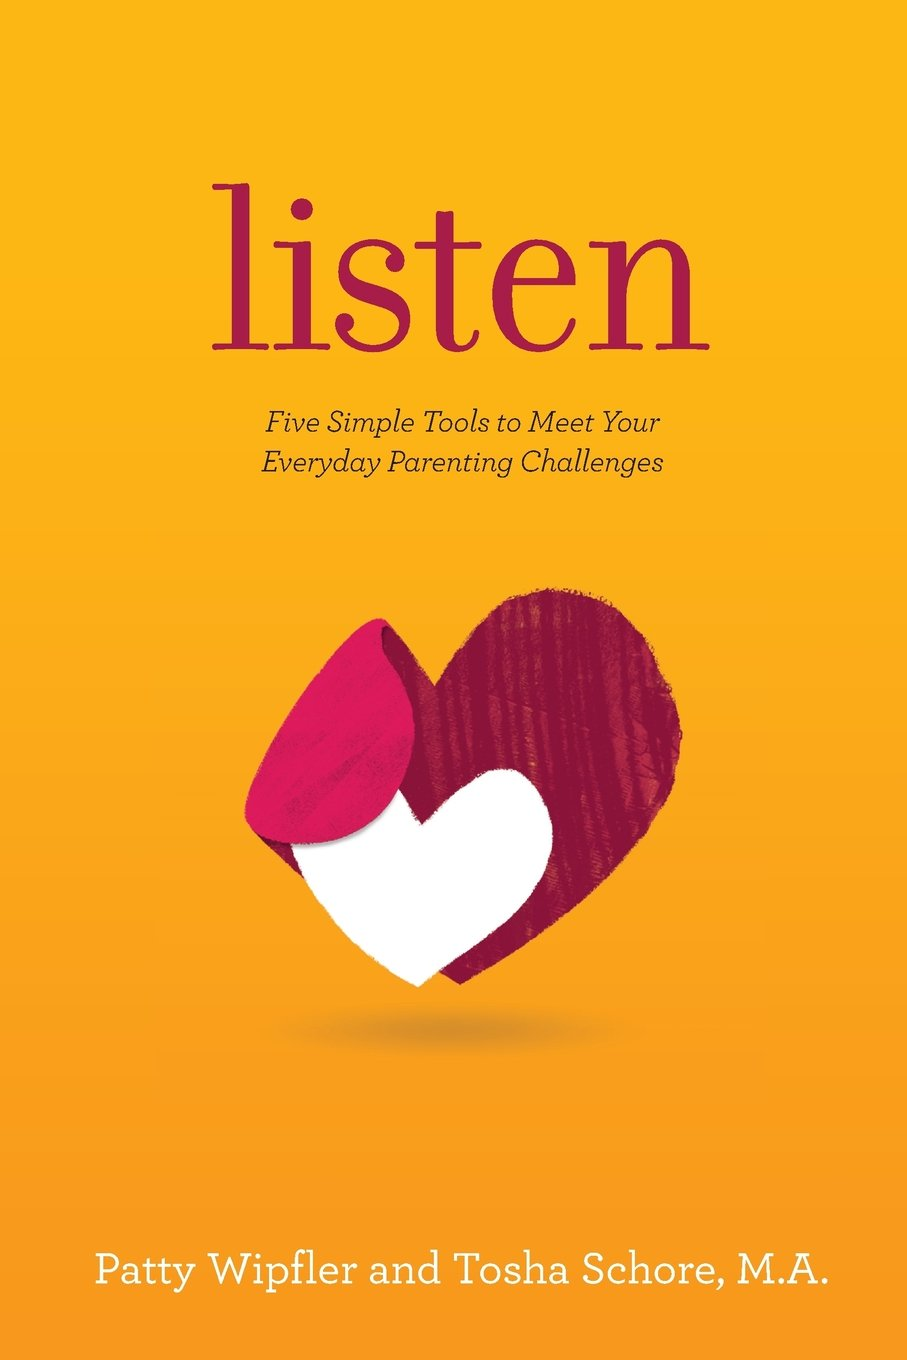 Listen Simple Everyday Parenting Challenges product image